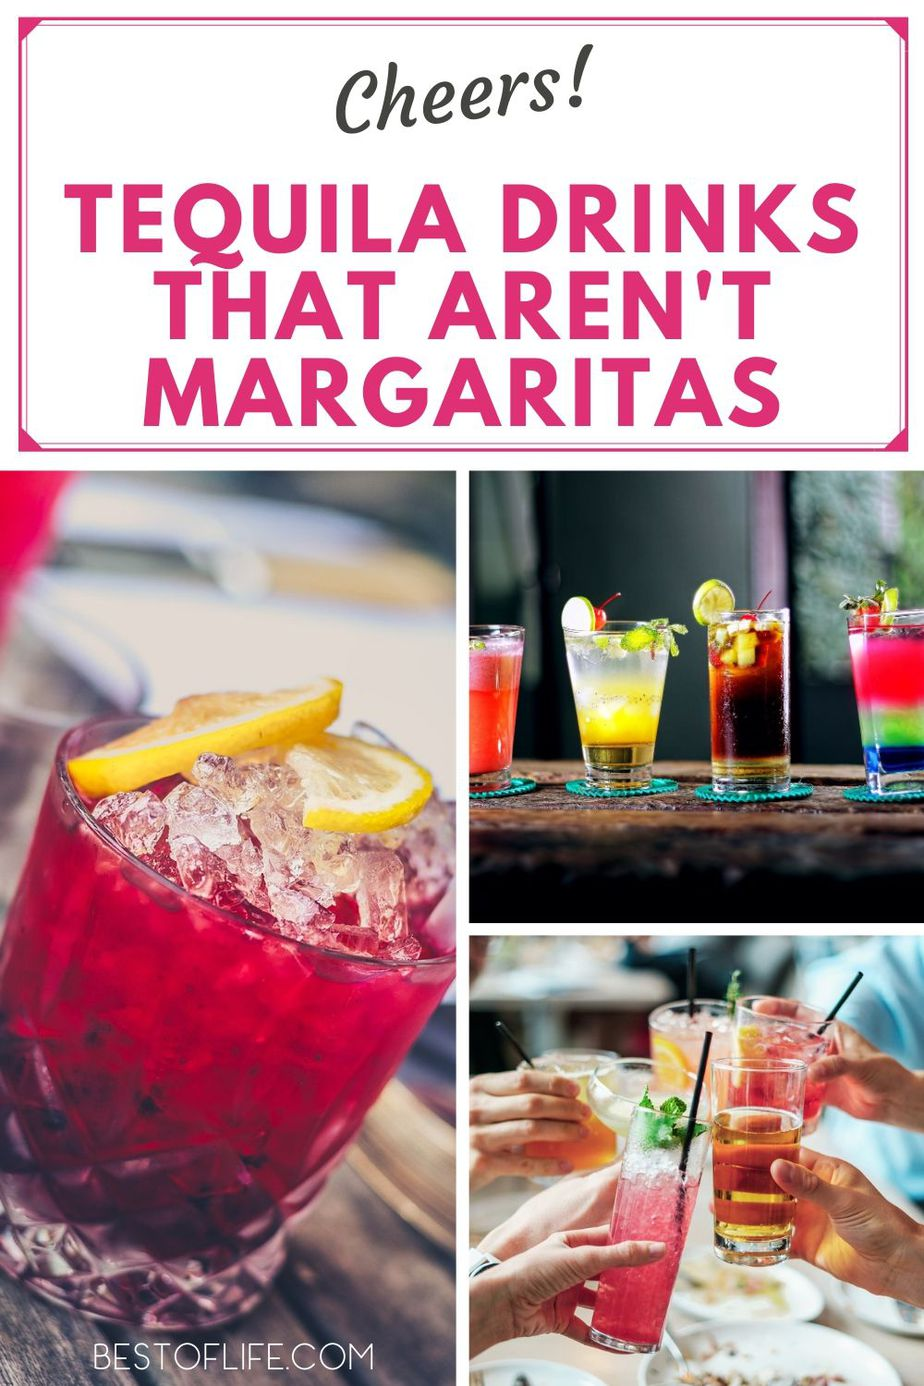 It's no secret we love margaritas, but there is so much more to do with tequila! From fruity drinks to coffees and spiced drinks, these tequila drinks that aren't margaritas are sure to be a favorite. Low Calorie Tequila Drinks | Tequila Cocktails | Tequila Drinks Recipes | Easy Tequila Drinks #easycocktails #cocktailrecipes #tequila #drinkrecipes via @thebestoflife